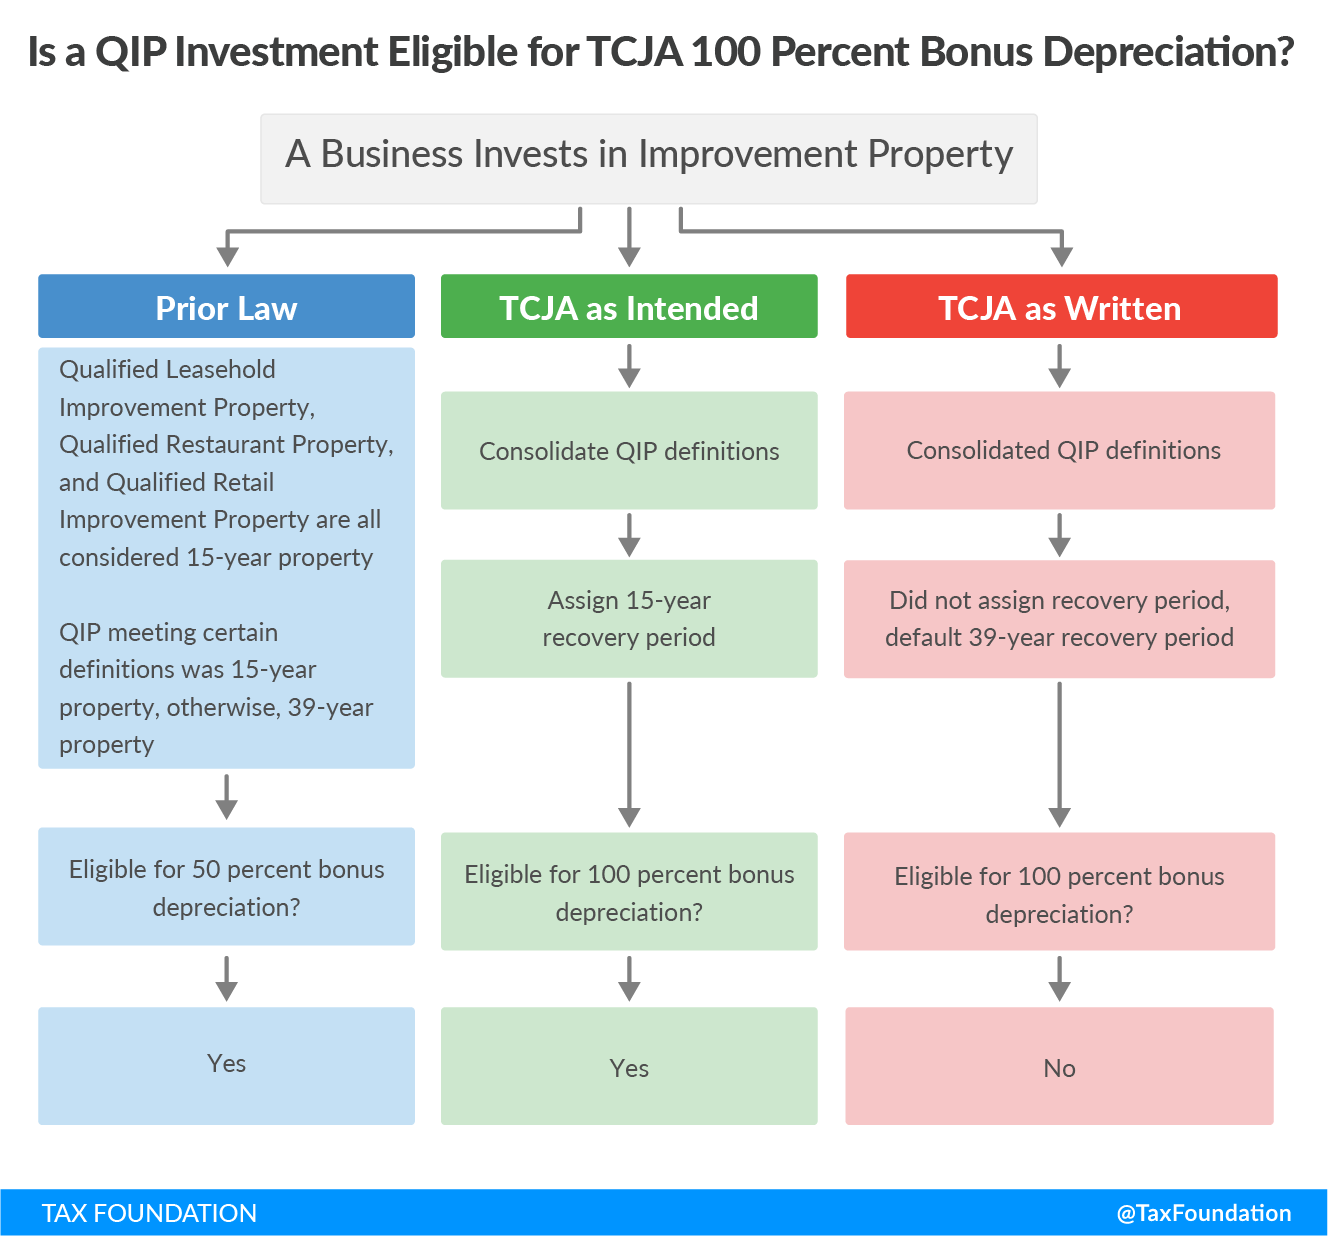 Is a QIP Investment Eligible for TCJA 100 Percent Bonus Depreciation?